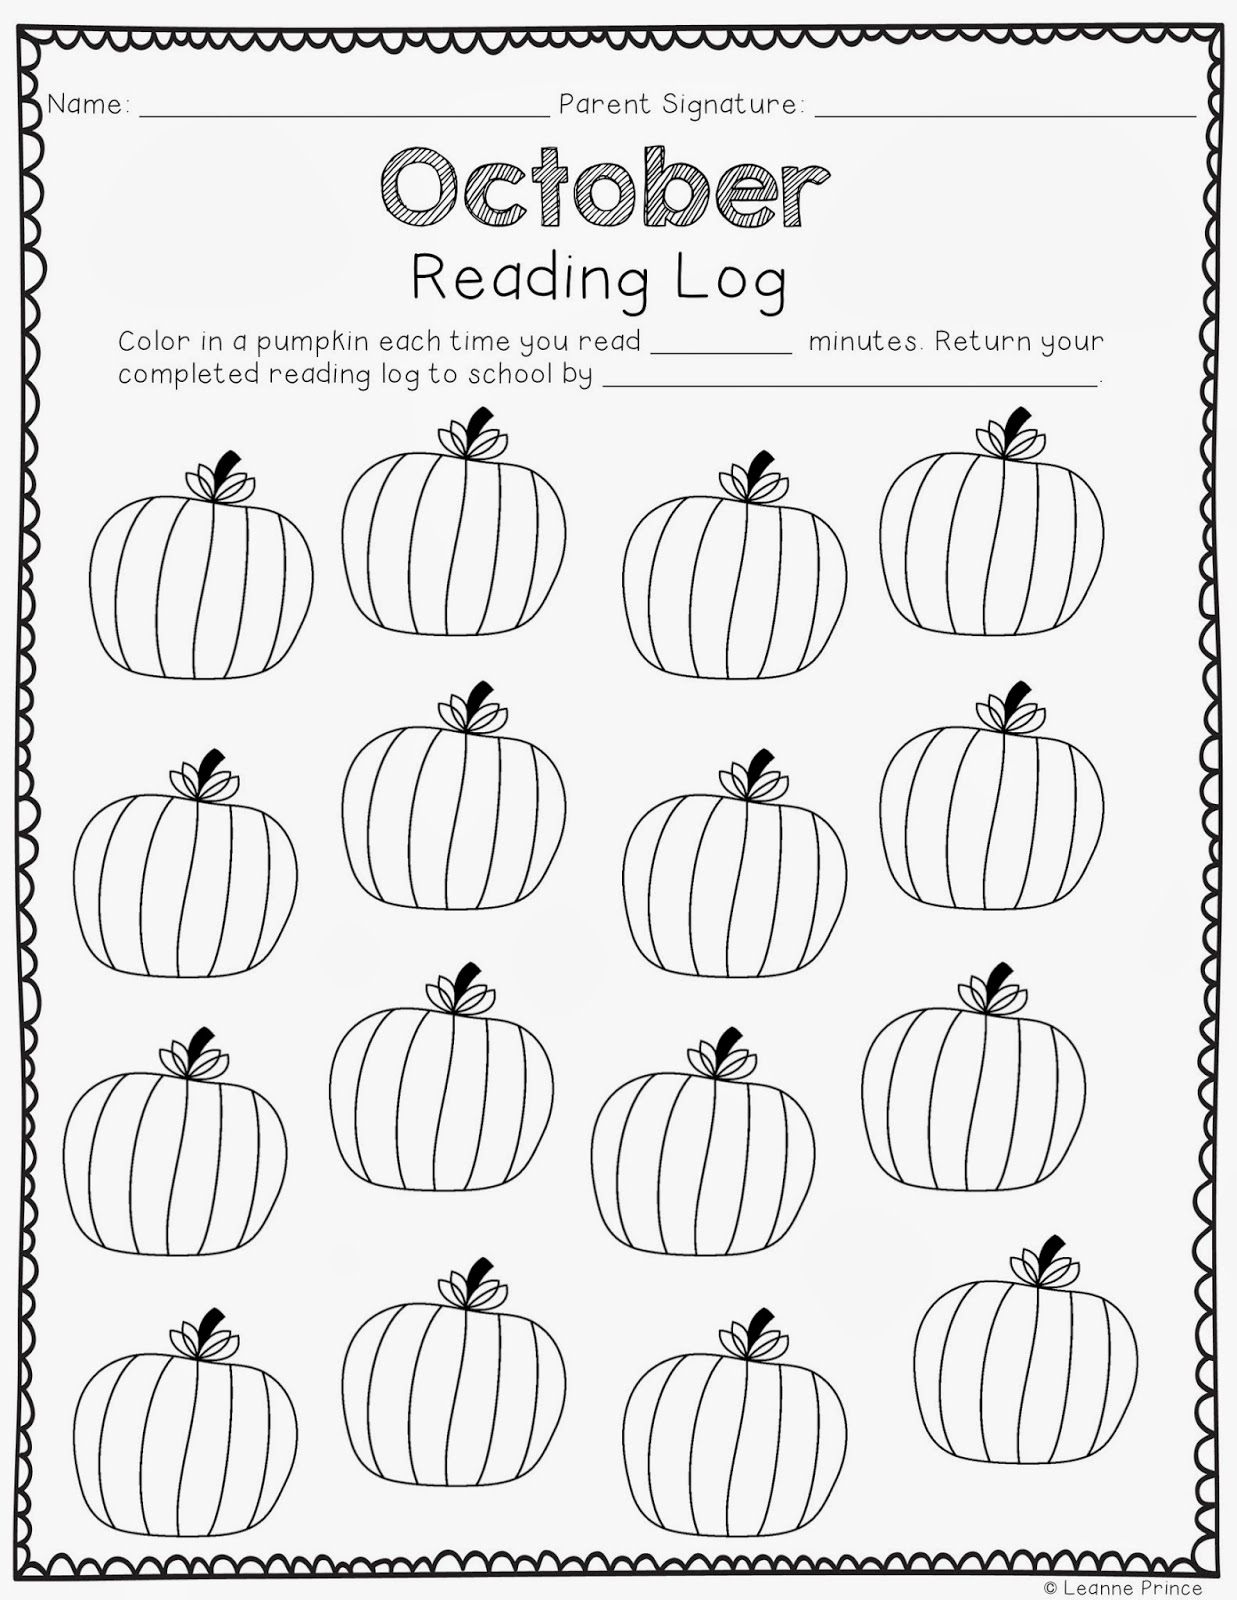 Search Results For Monthly Reading Logs For Kindergarten